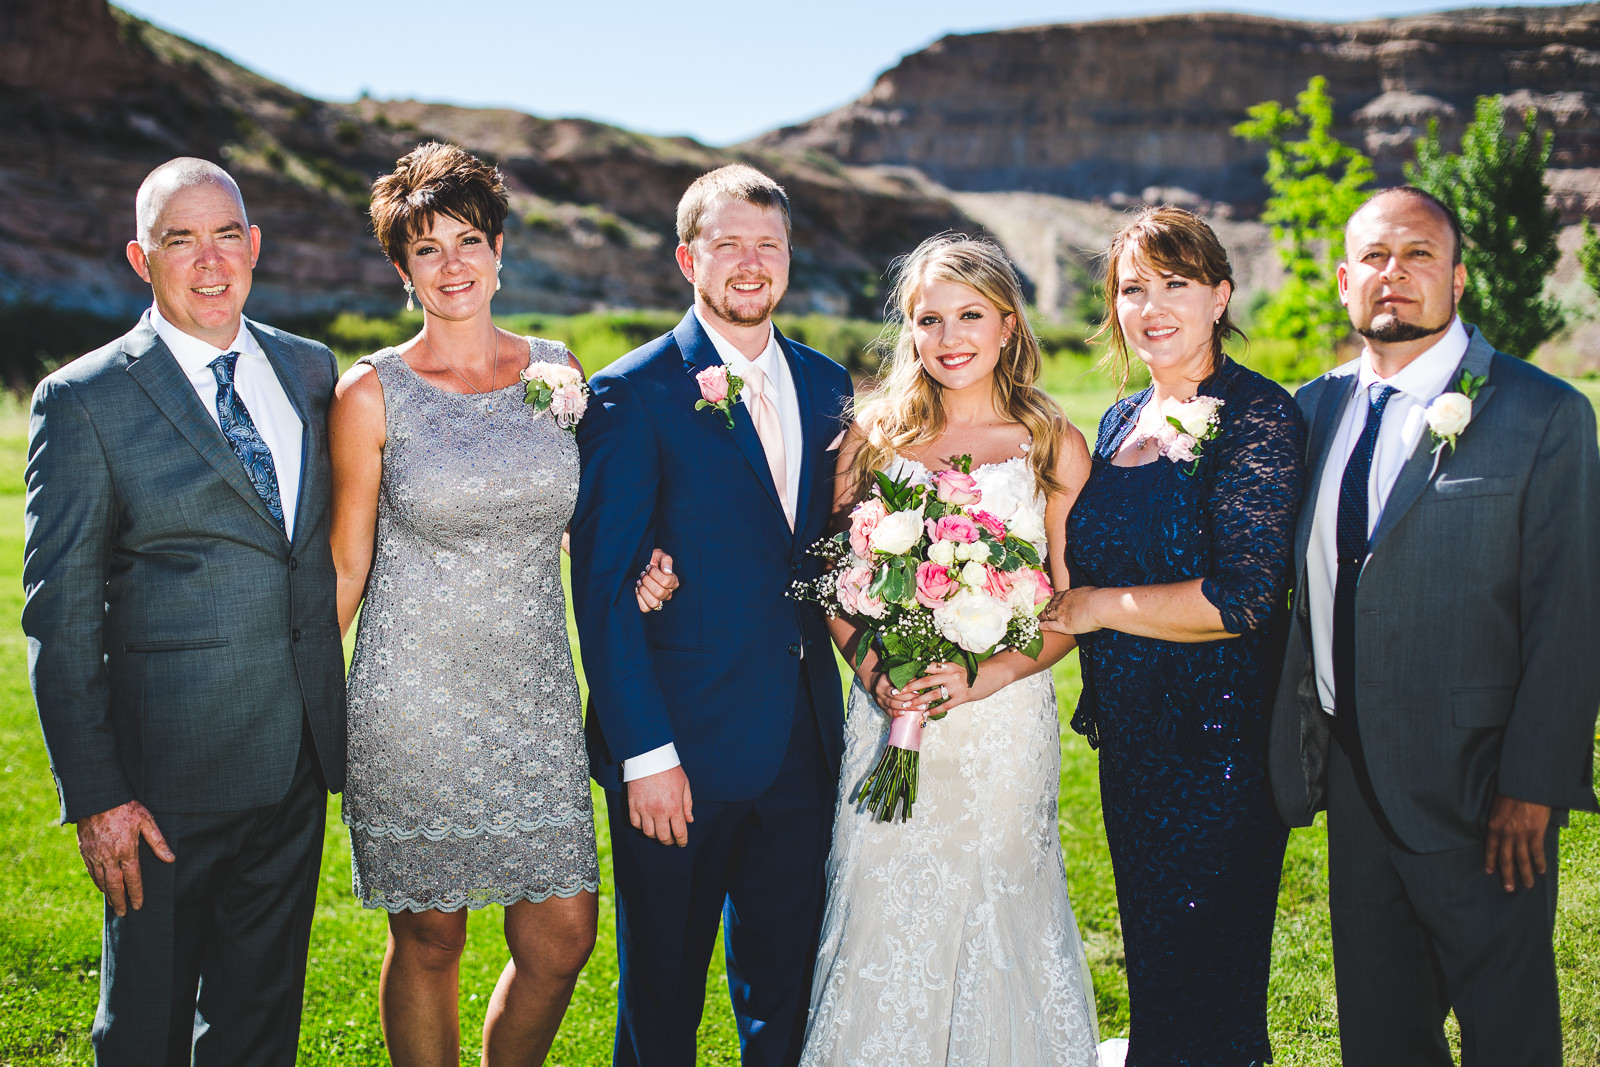 Formal group photo of bride and groom with their parents